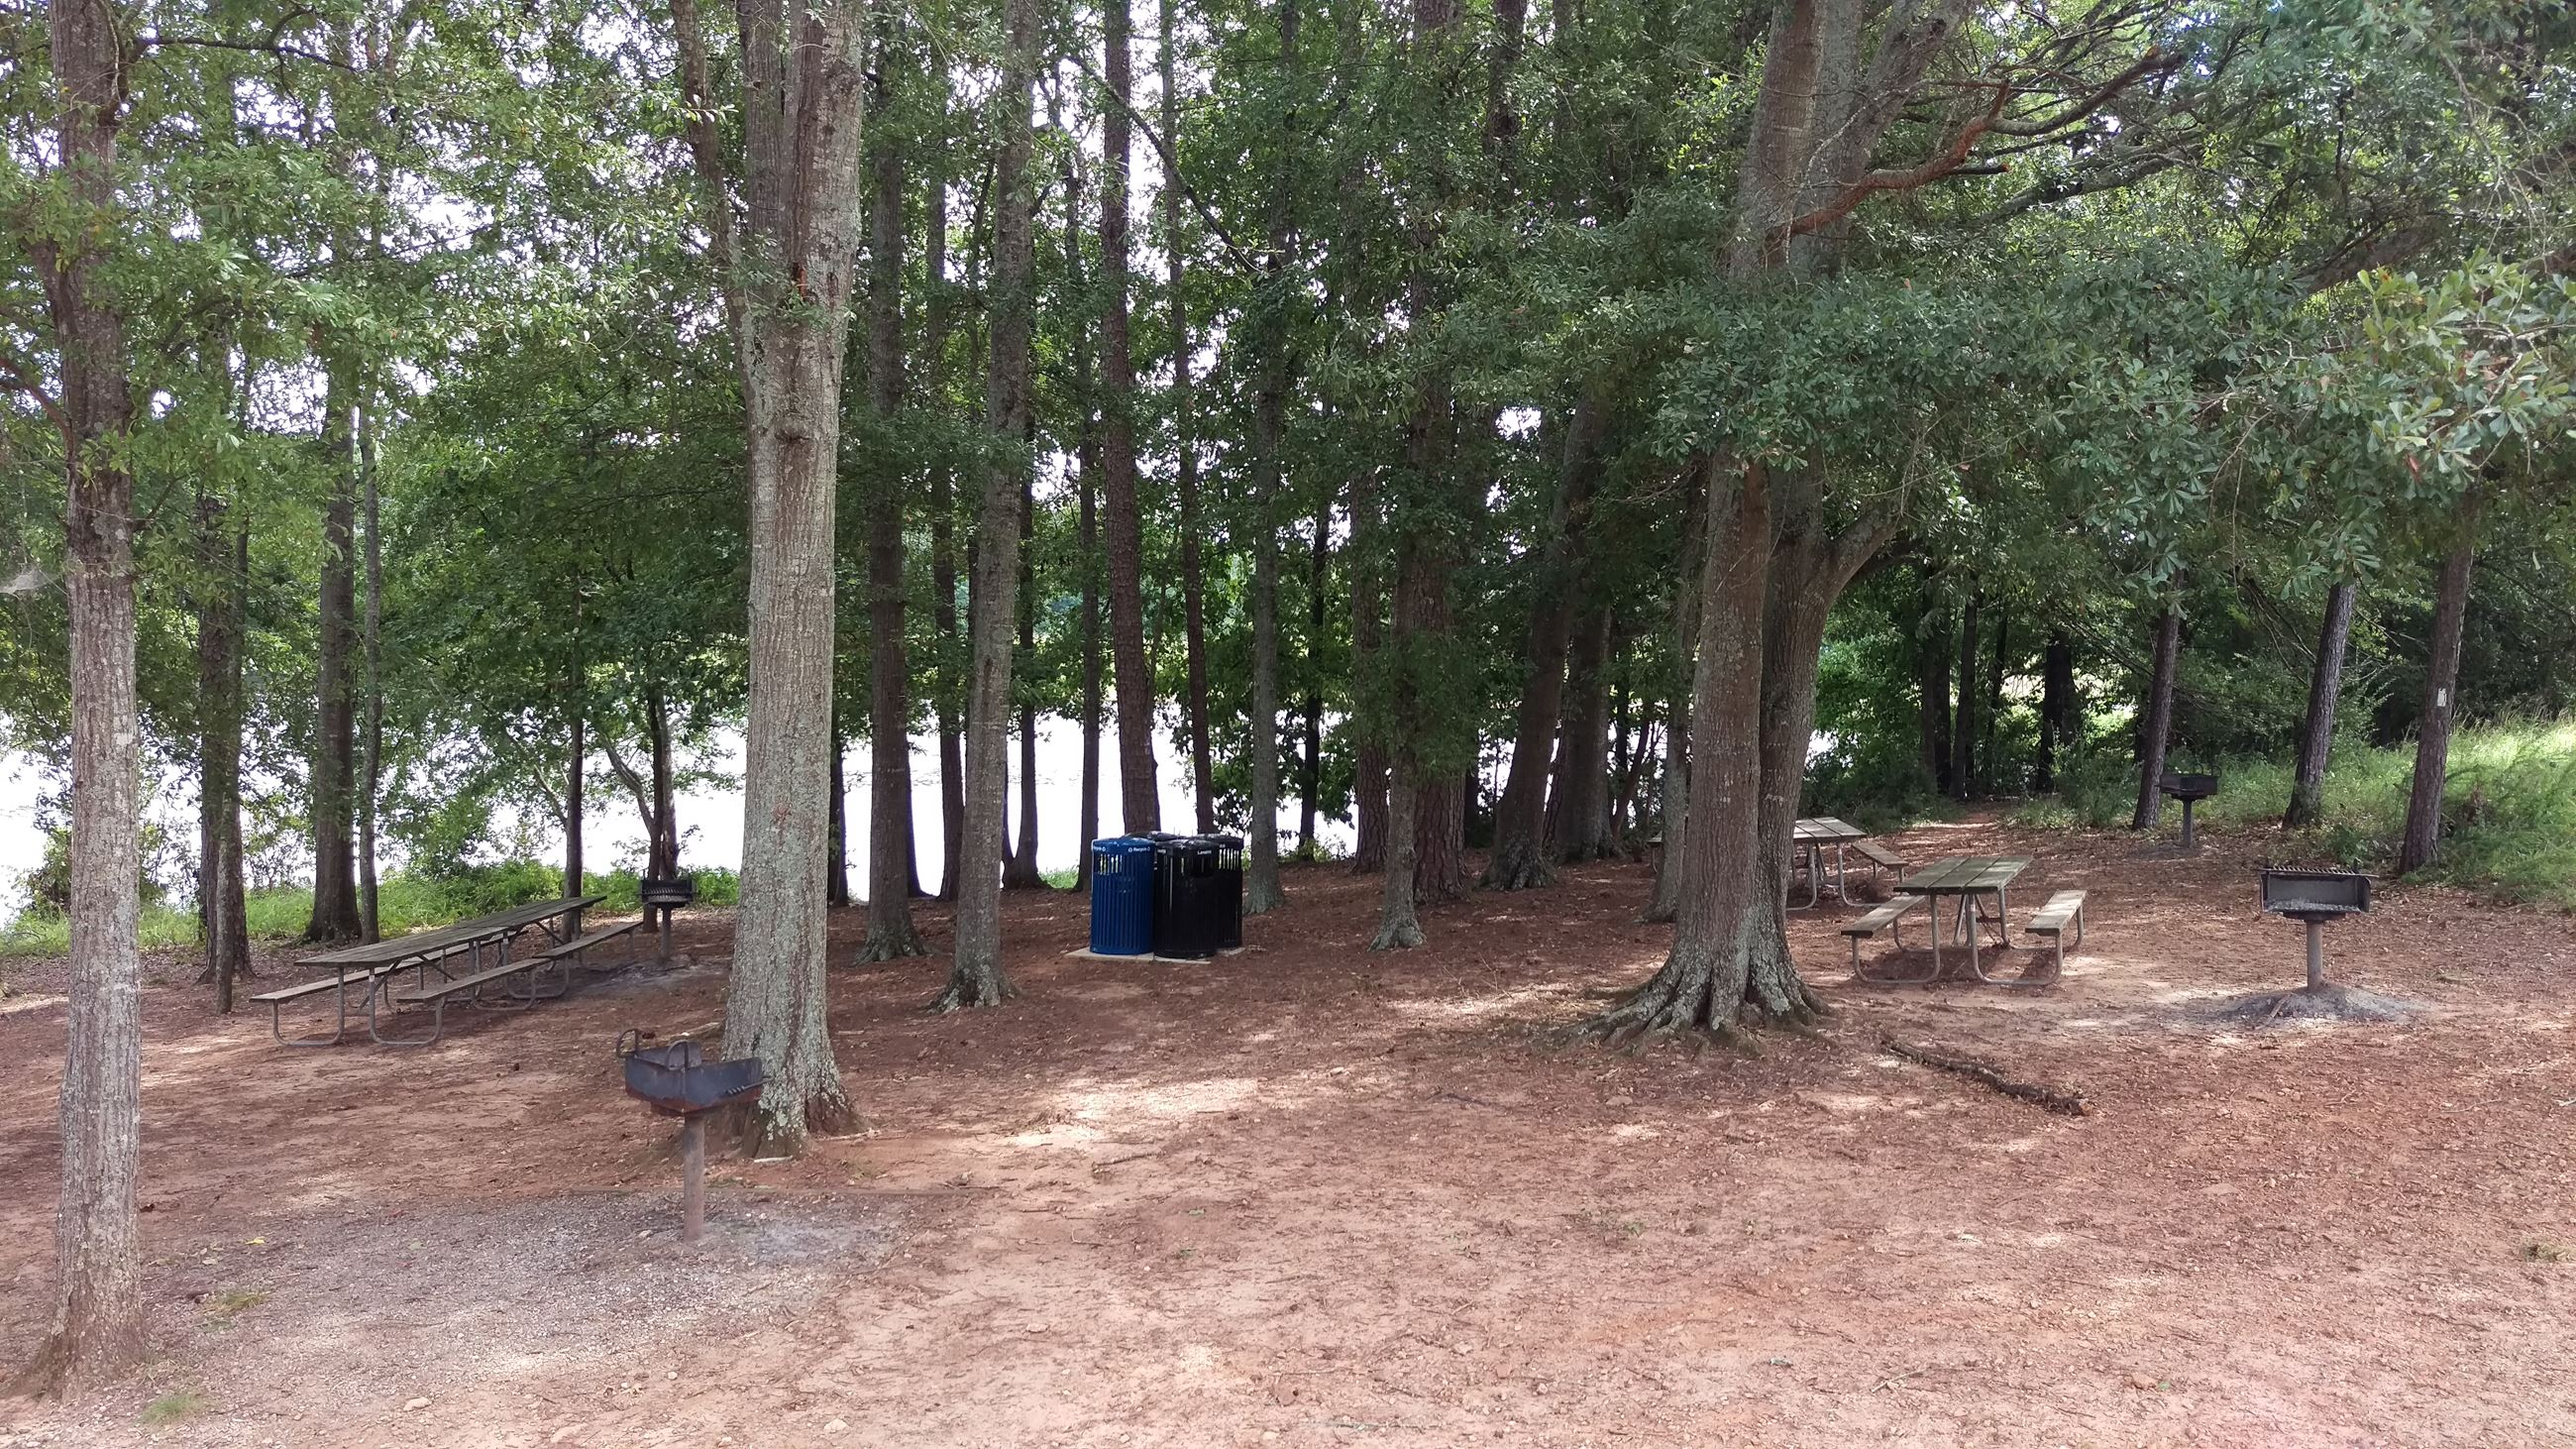 Photo of Picnic Area 1 at Sandy Creek Park.